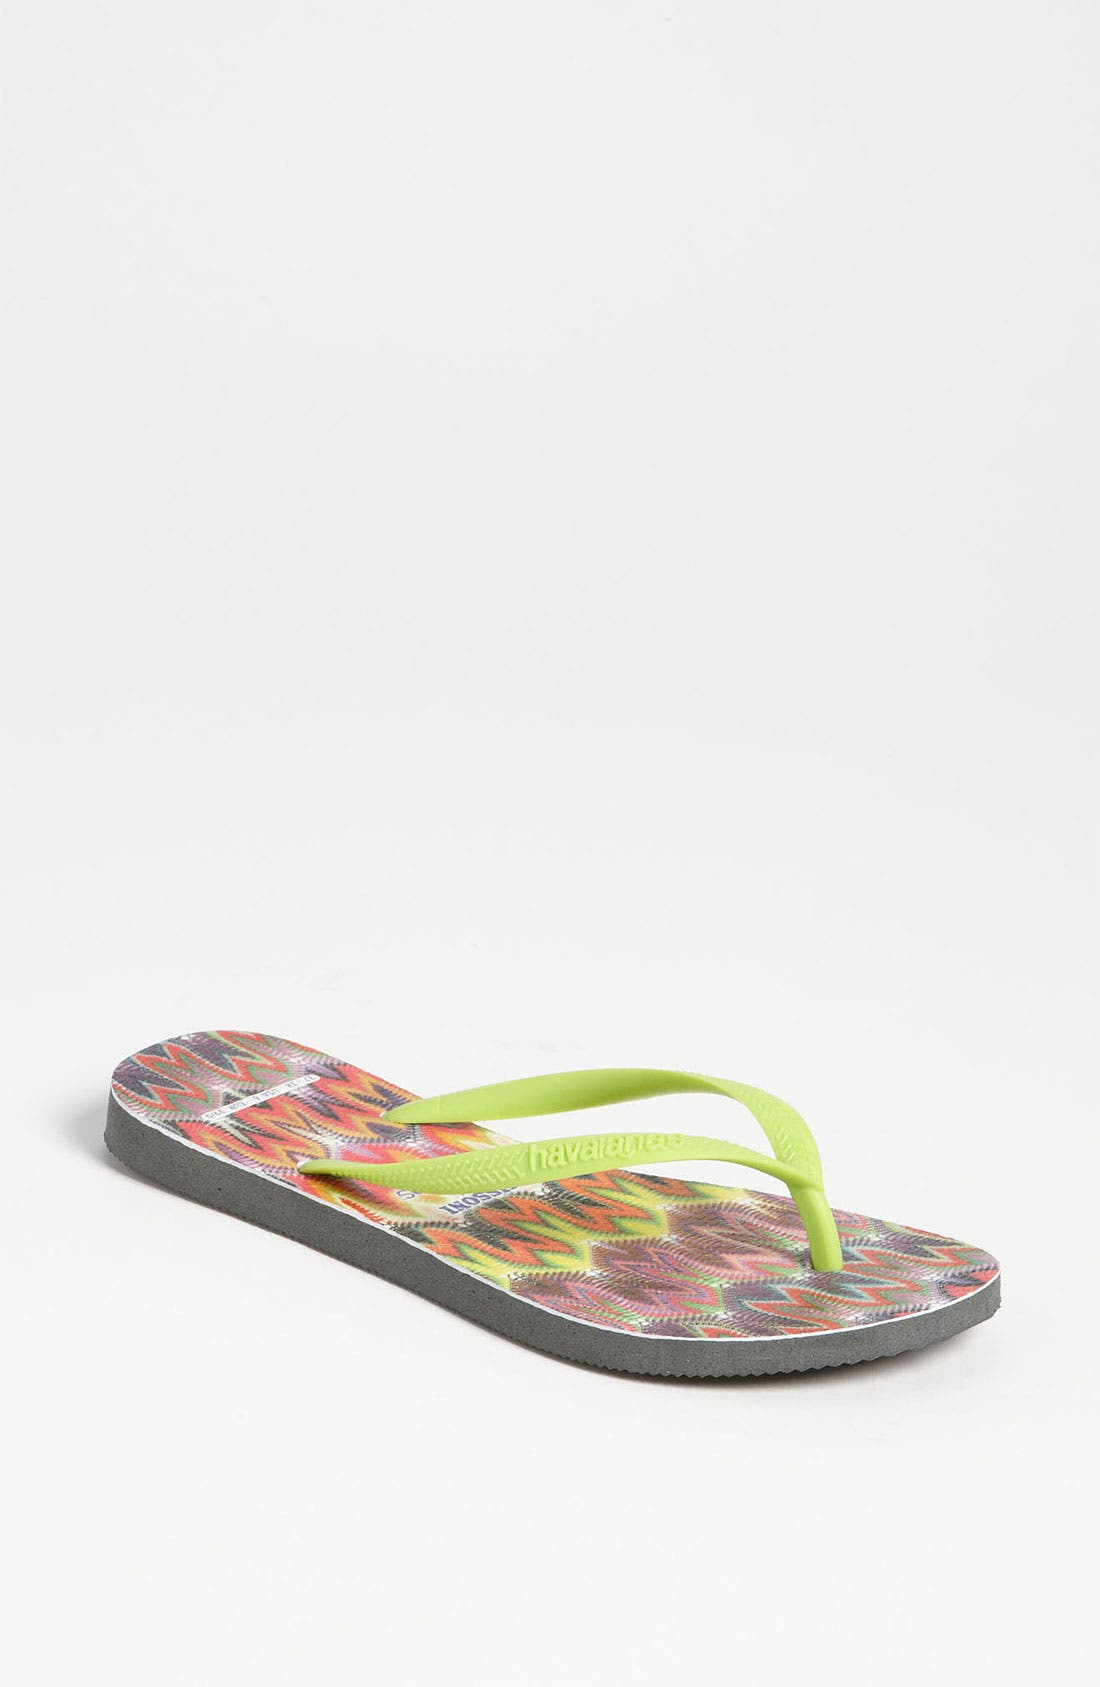 Alternate Image 1 Selected - Missoni Loves Havaianas 'Slim - Rachel' Flip Flop